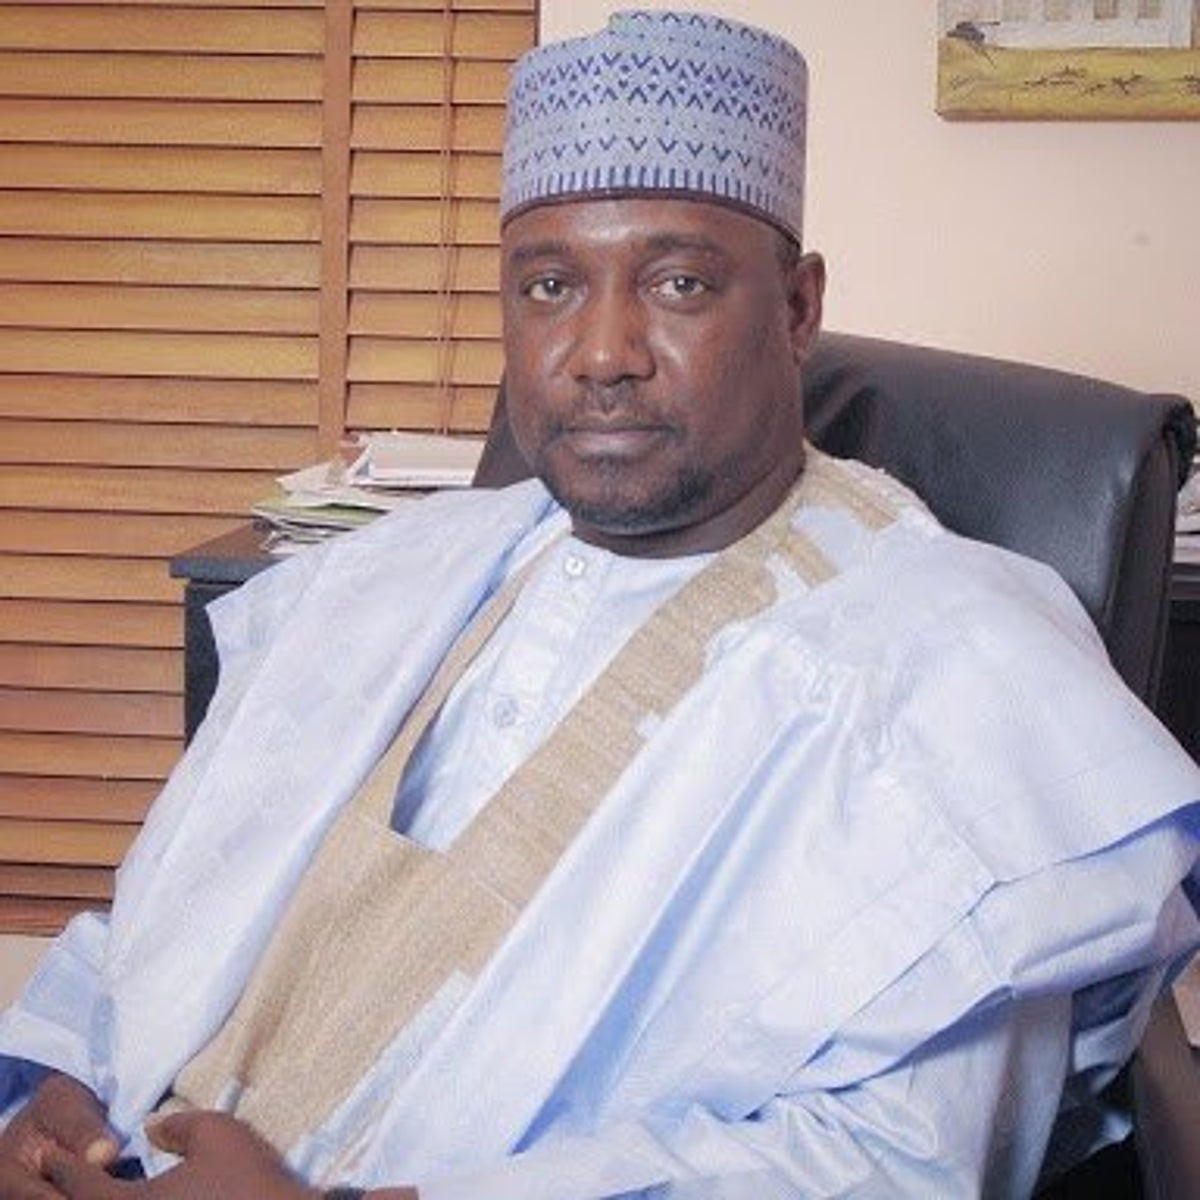 Kagara abduction - Some of these bandits are tired and need to be taken care of - Niger State Governor, Abubakar Bello (video)